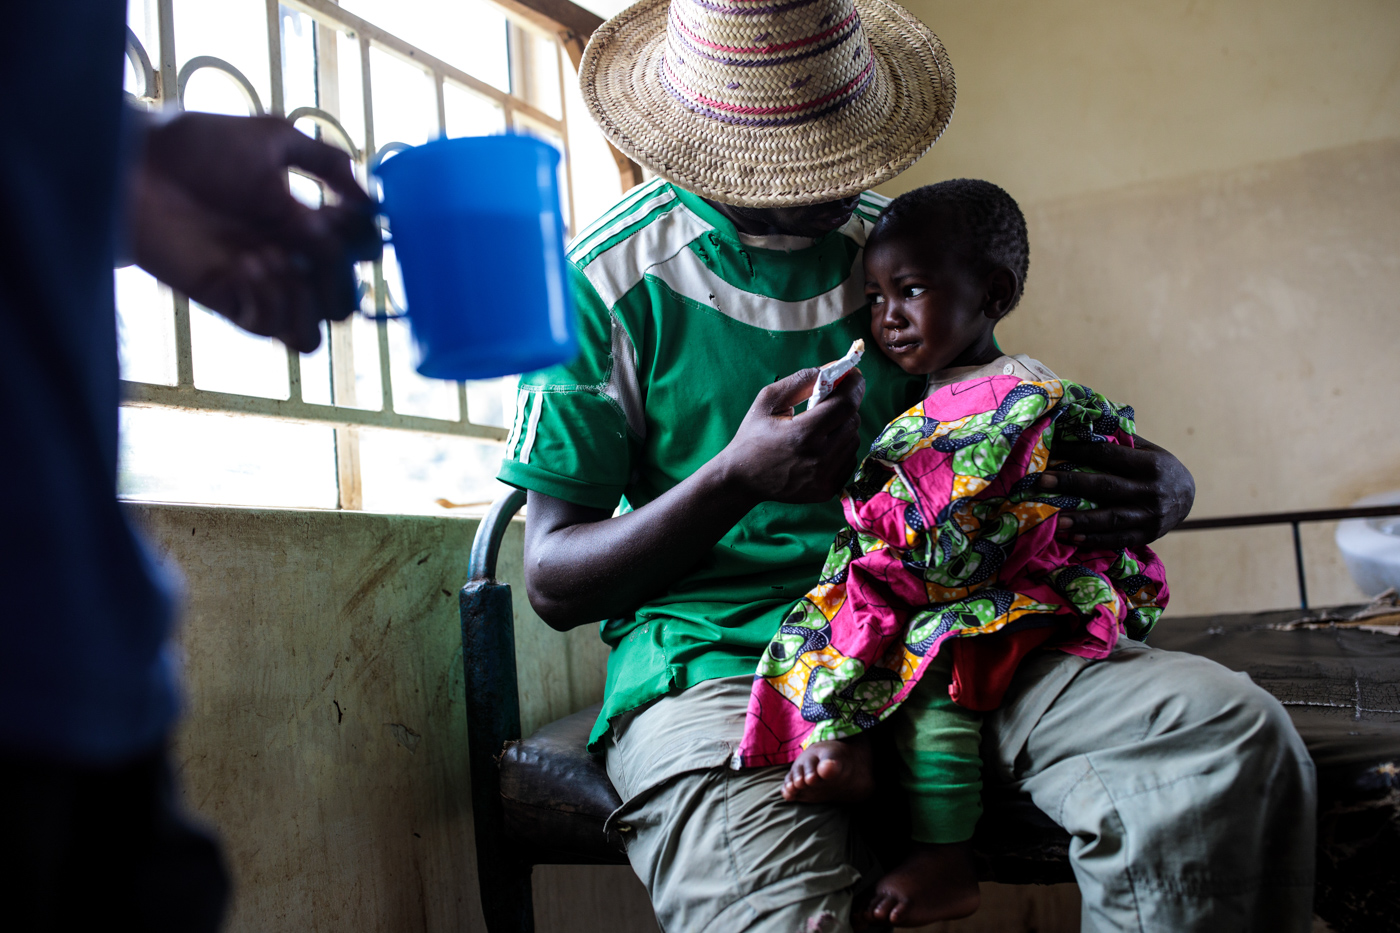 KYANGWALI, UGANDA - APRIL 06: A one-year-old refugee suffering from severe malnutrition is fed by her father at the Rwenyawawa Health Centre in the Kyangwali Refugee Settlement on April 6, 2018.